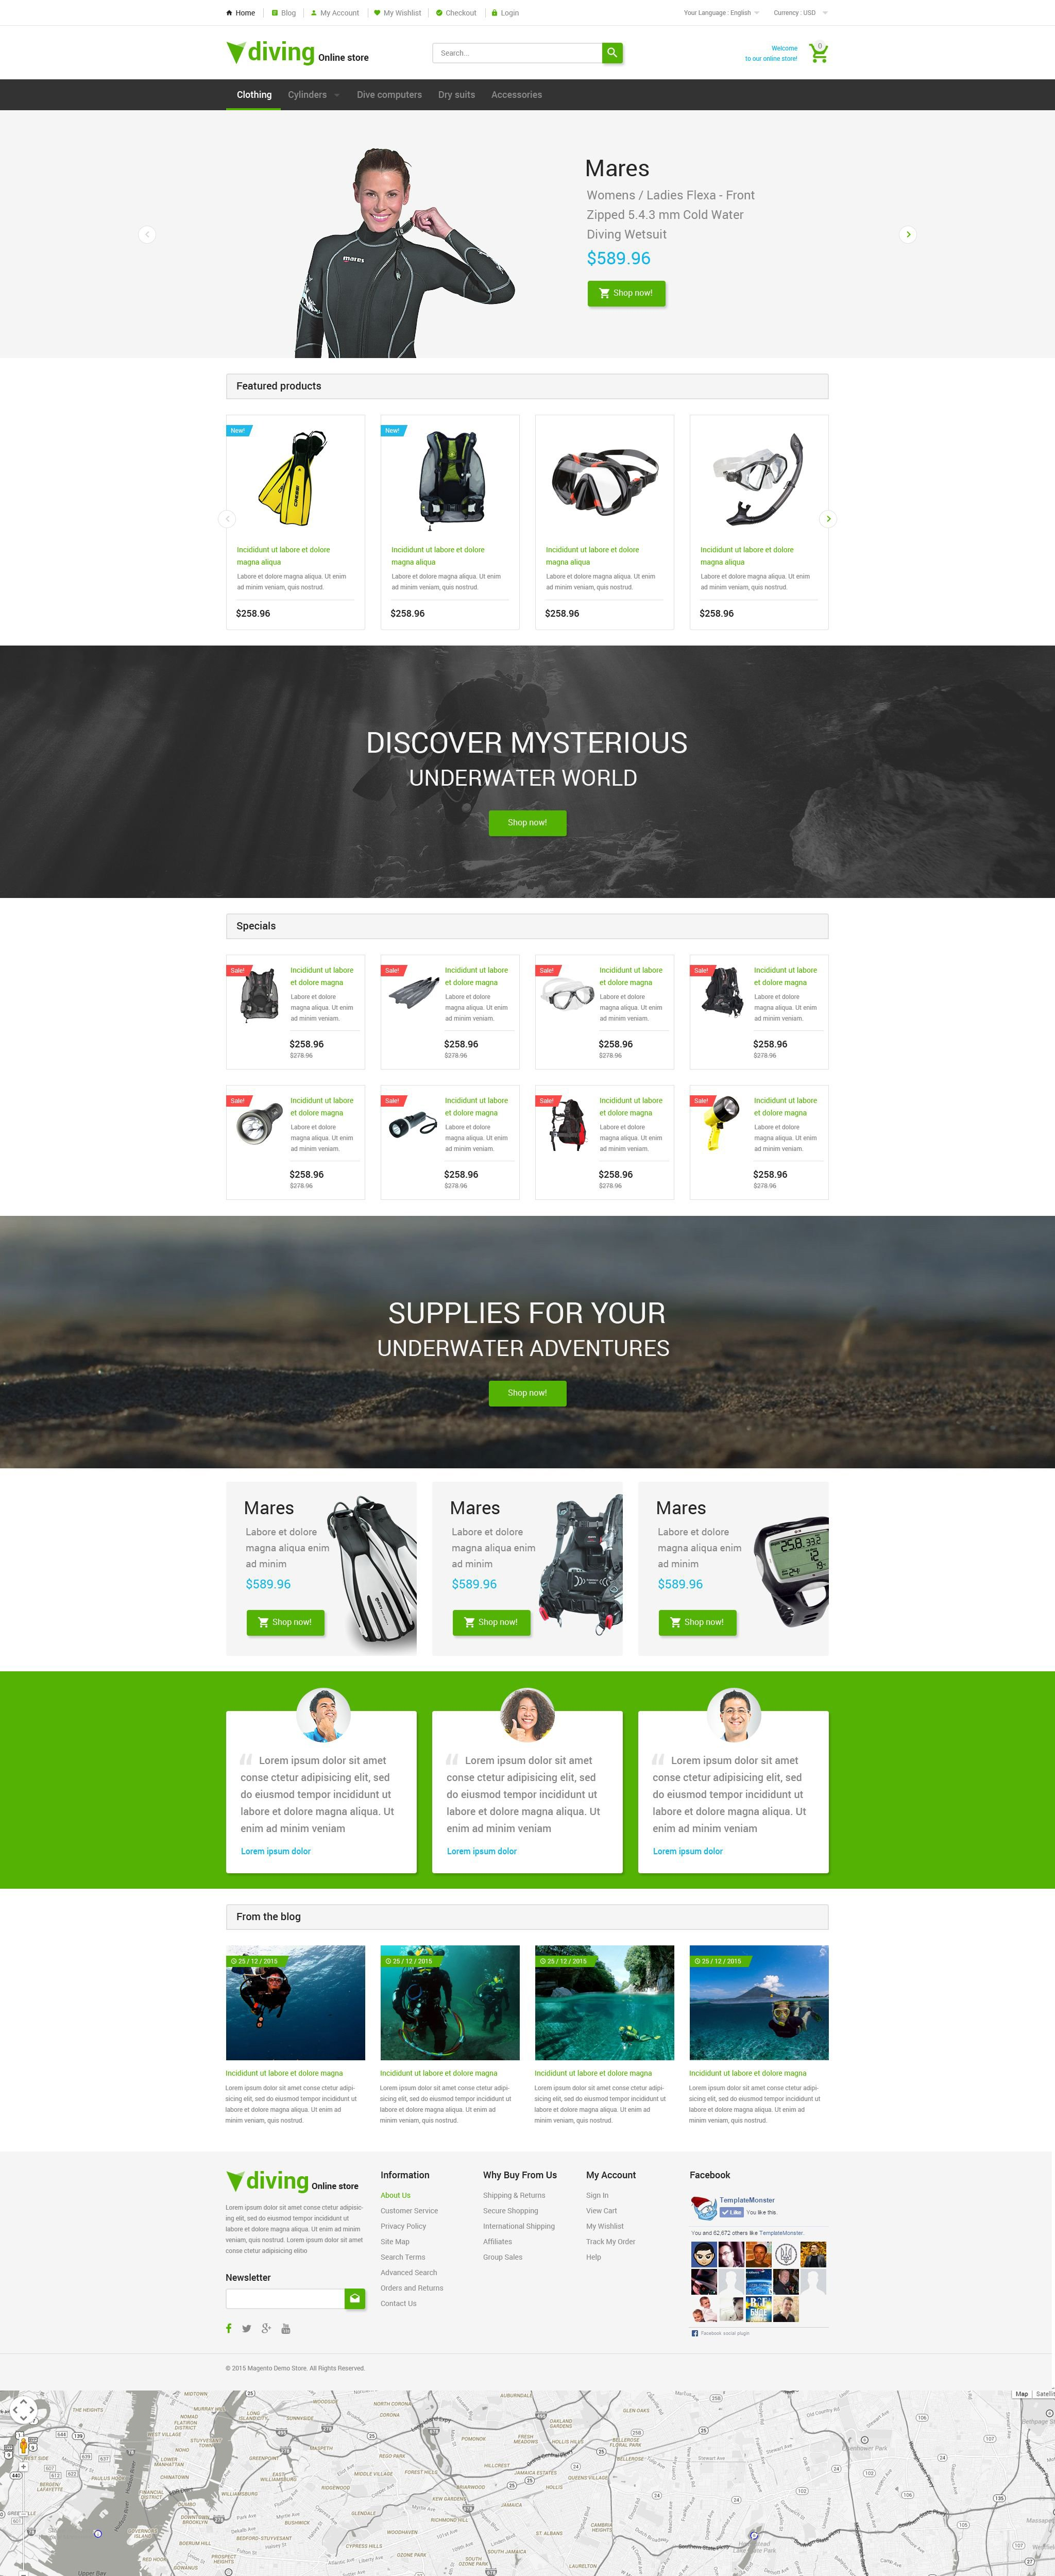 The Diving Shop Magento Design 54661, one of the best Magento themes of its kind (sport, most popular), also known as diving shop Magento template, sport Magento template, aqualung Magento template, submarine Magento template, oxygen Magento template, flippers Magento template, mask Magento template, reef Magento template, diving-suit Magento template, photography Magento template, camera Magento template, training Magento template, services Magento template, trainer Magento template, ring-buoy Magento template, life-guard Magento template, subscription Magento template, rules Magento template, travel Magento template, equipment and related with diving shop, sport, aqualung, submarine, oxygen, flippers, mask, reef, diving-suit, photography, camera, training, services, trainer, ring-buoy, life-guard, subscription, rules, travel, equipment, etc.